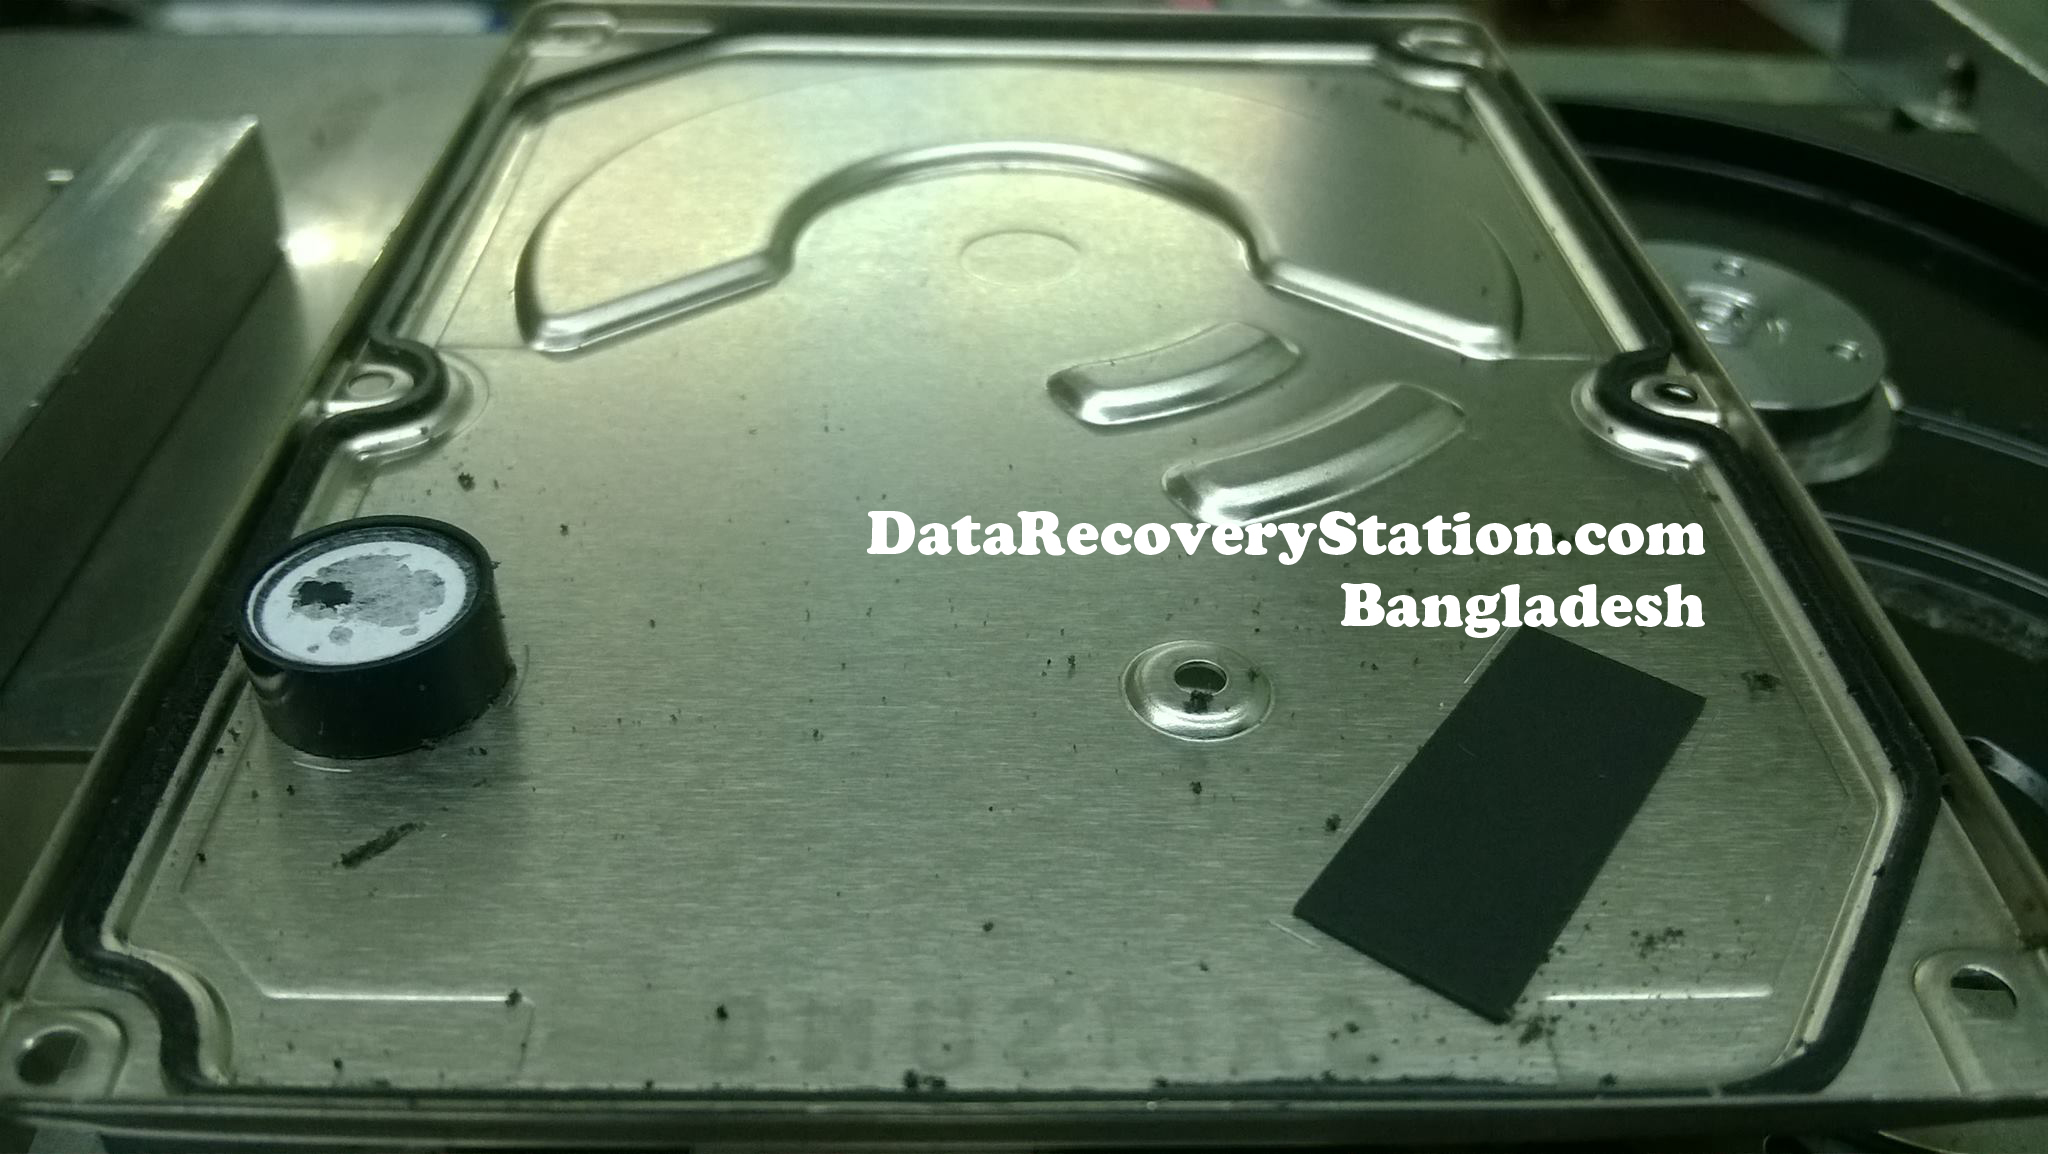 dirty-hdd-data-recovery-2